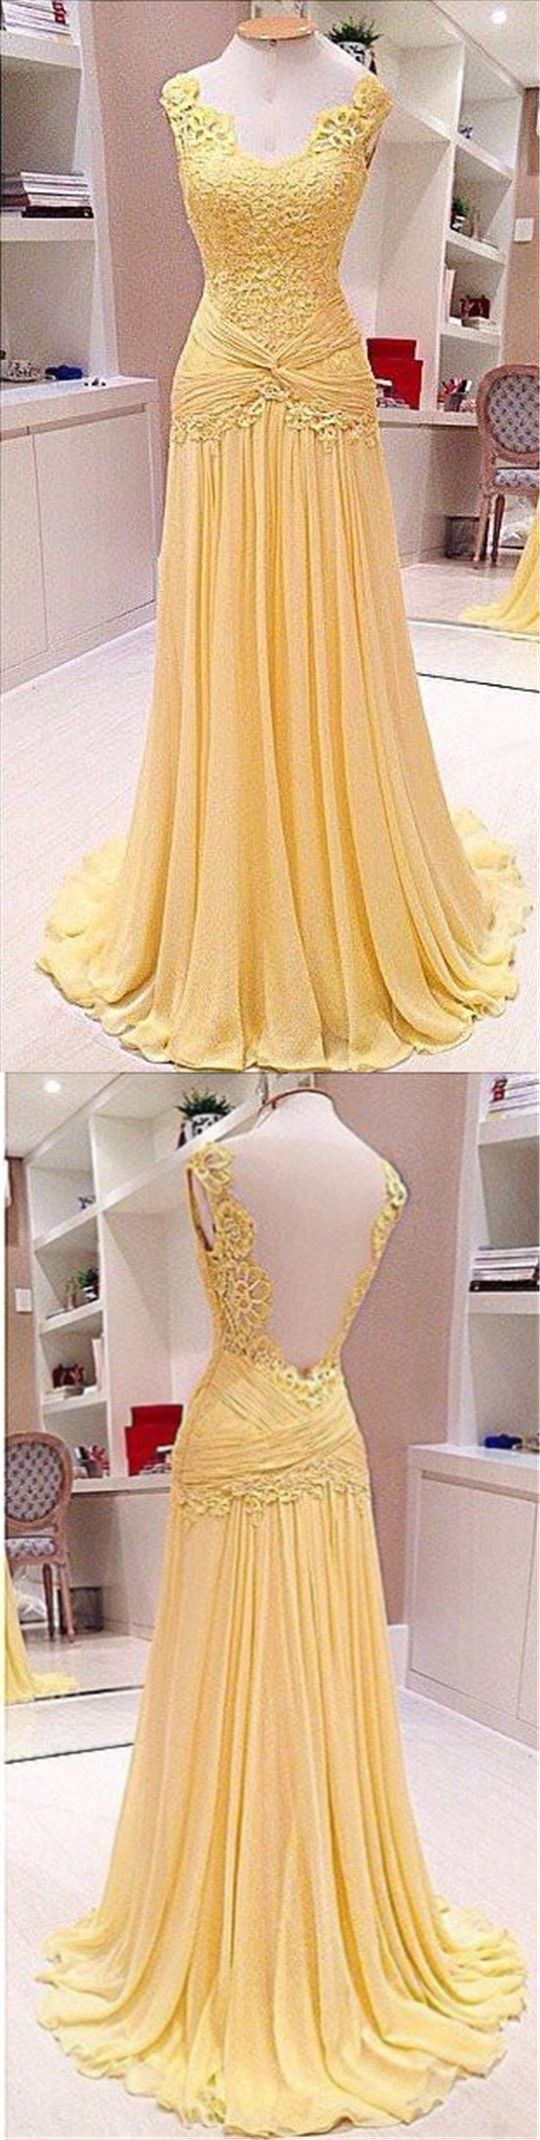 Elegant vneck lace backless long aline yellow chiffon prom dresses